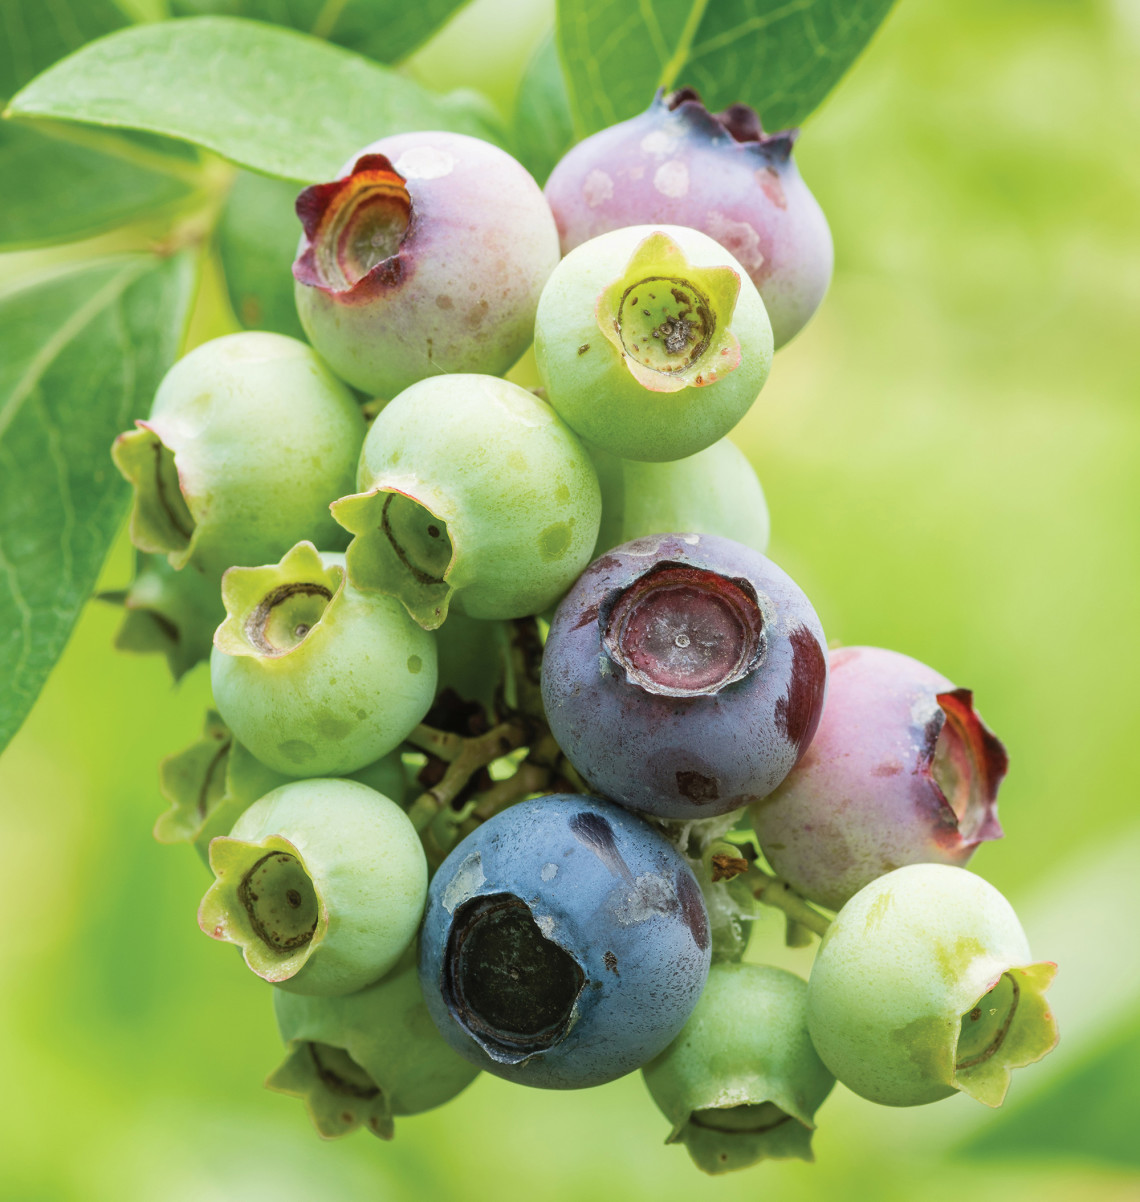 Fresh blueberries on the bush ready to pick